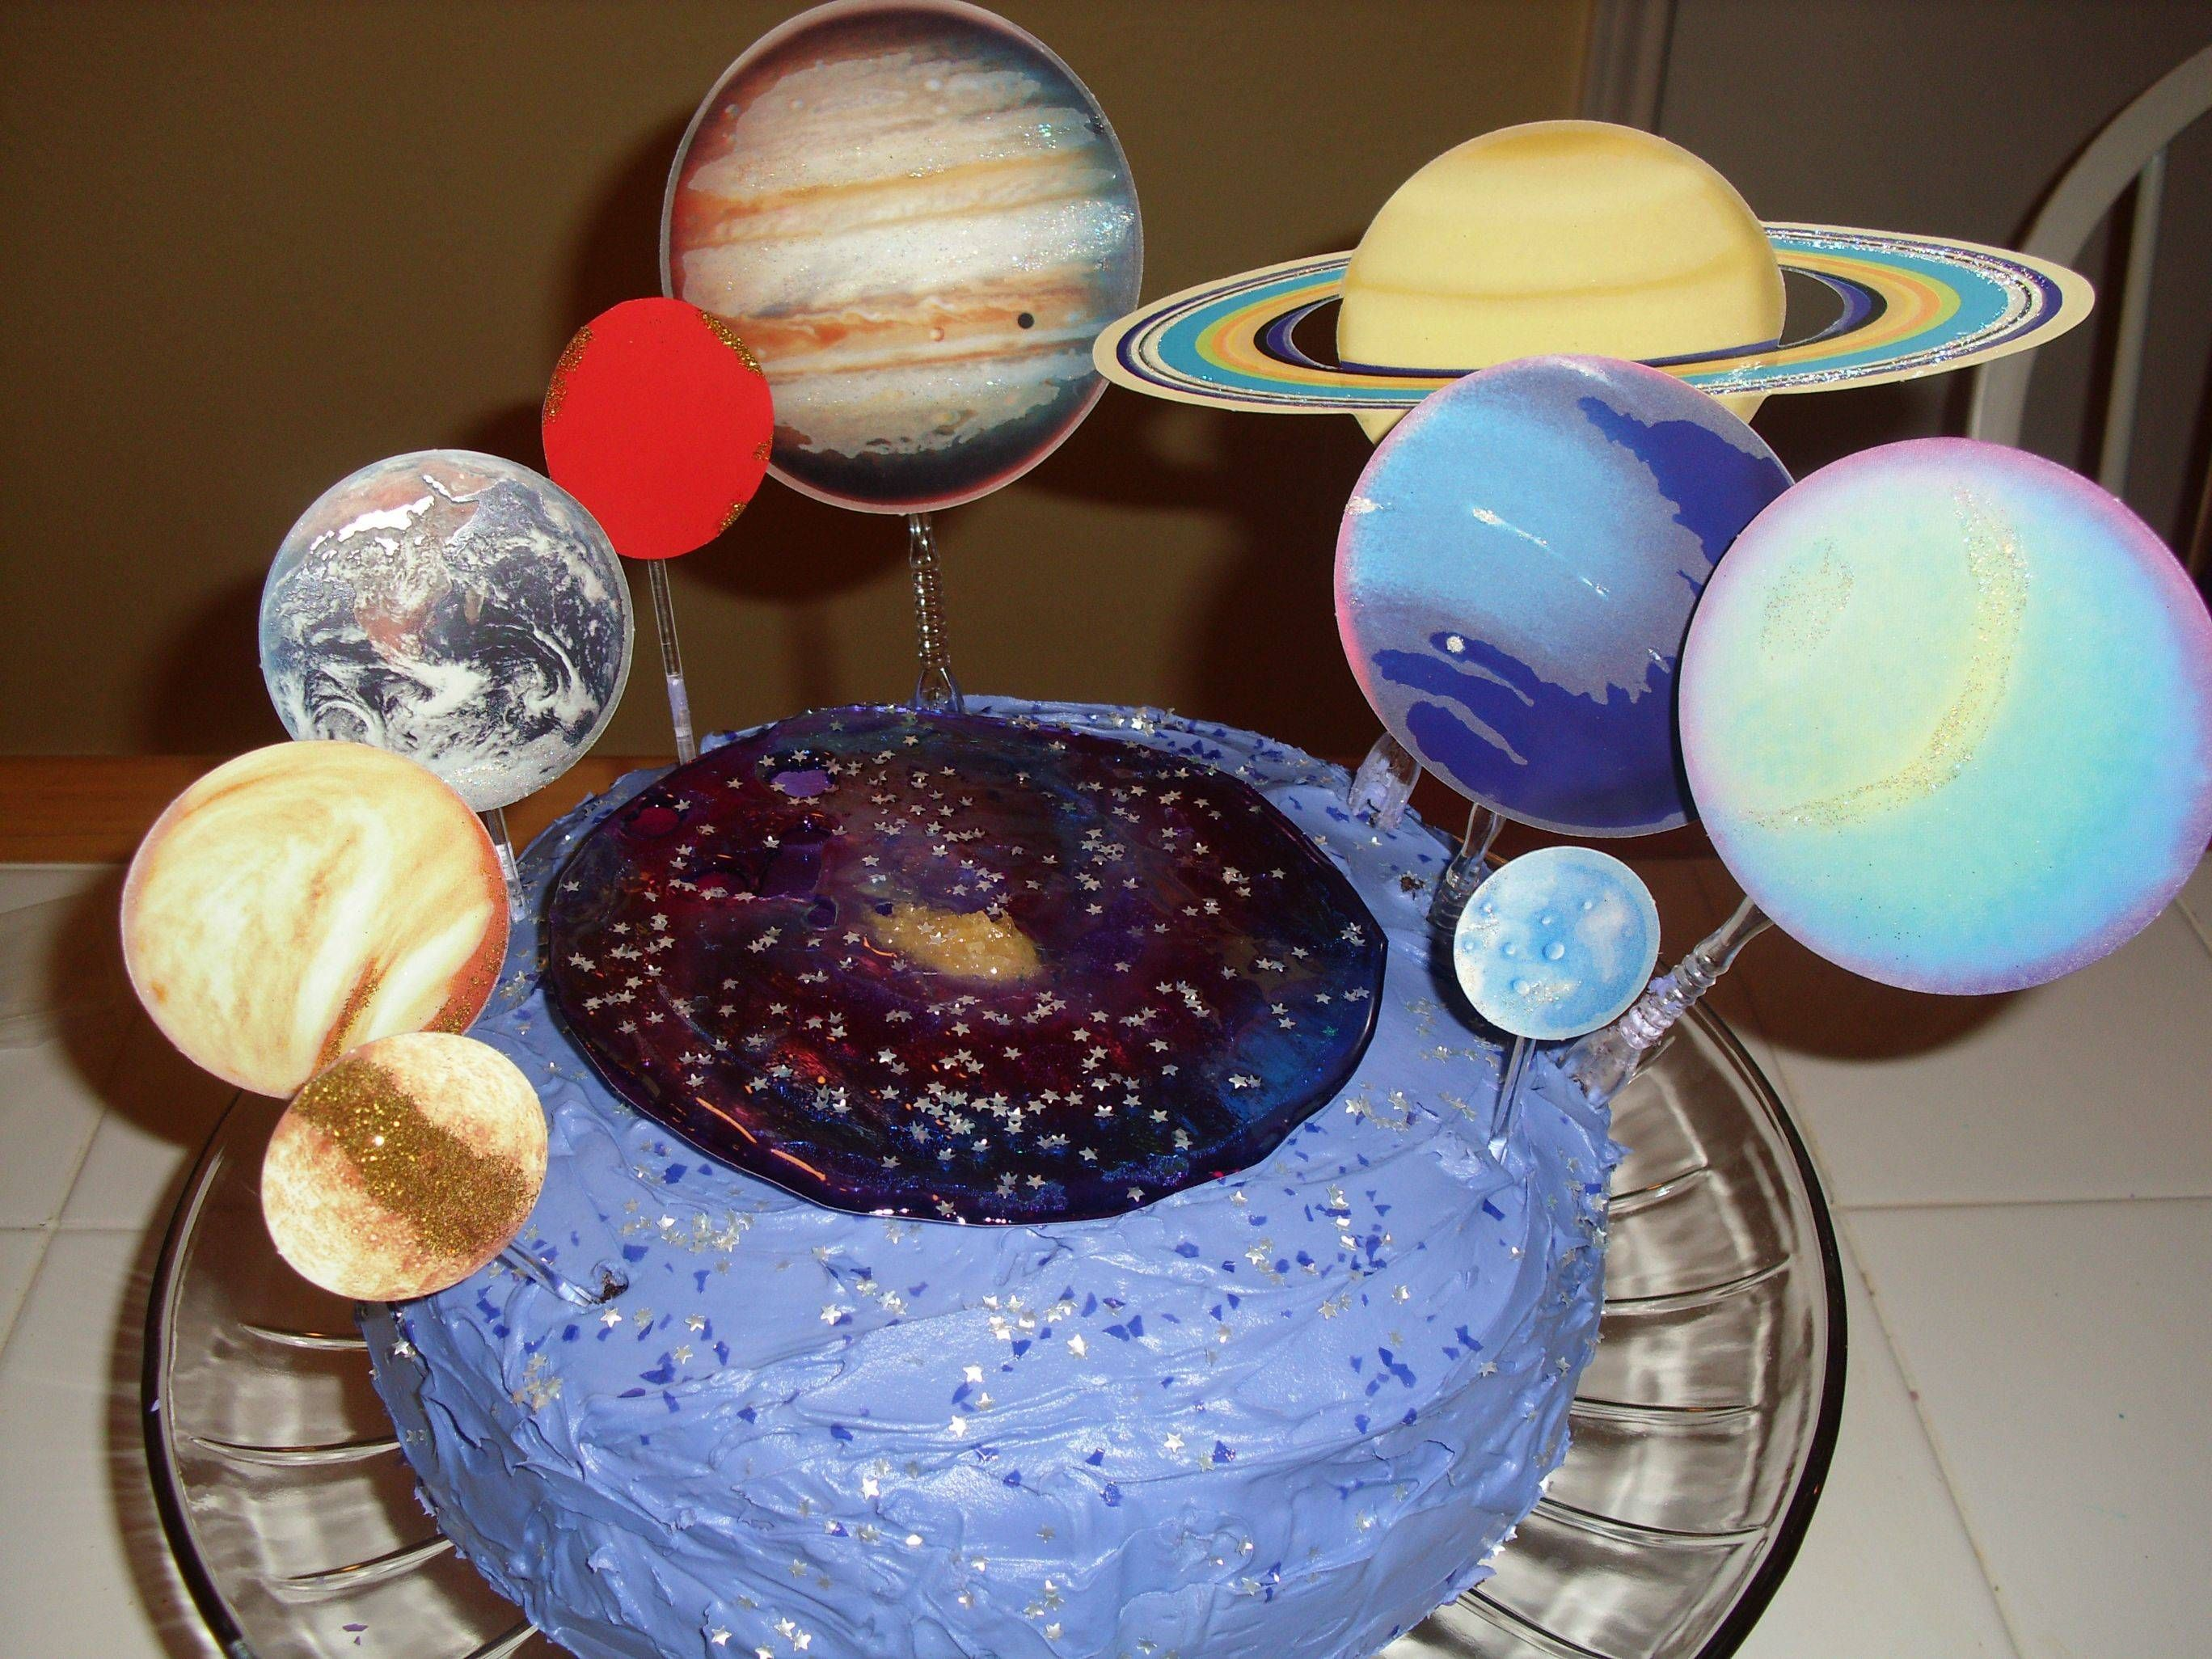 An Outer Space Birthday Cake With Melted Candy Nebula